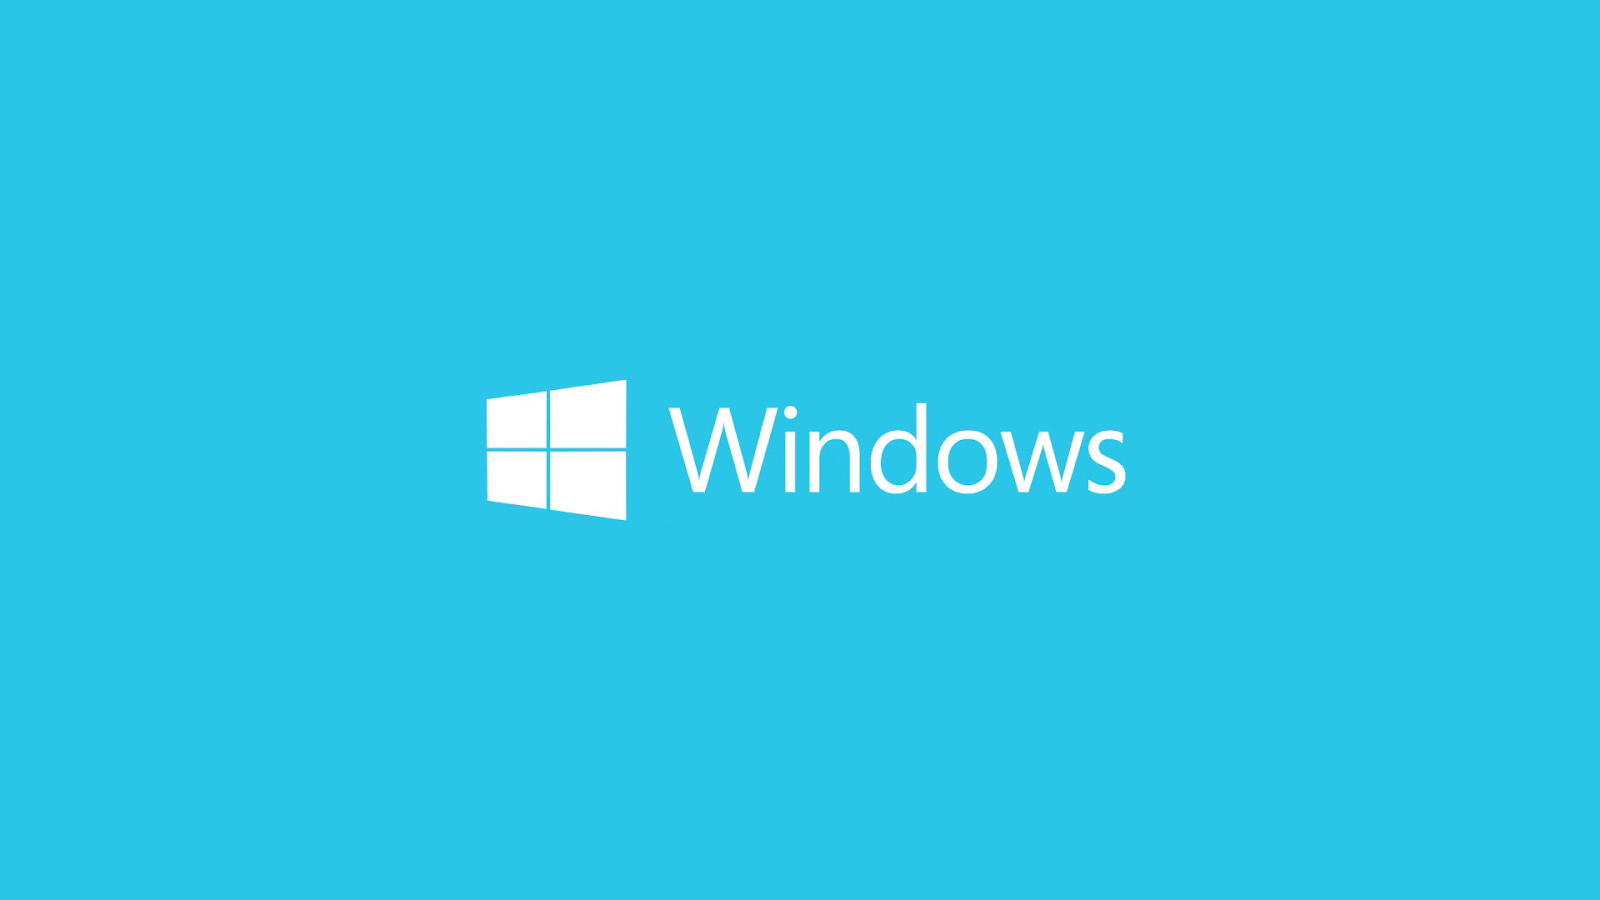 Windows 8 Wallpaper Set 11 2013 Wallpapers